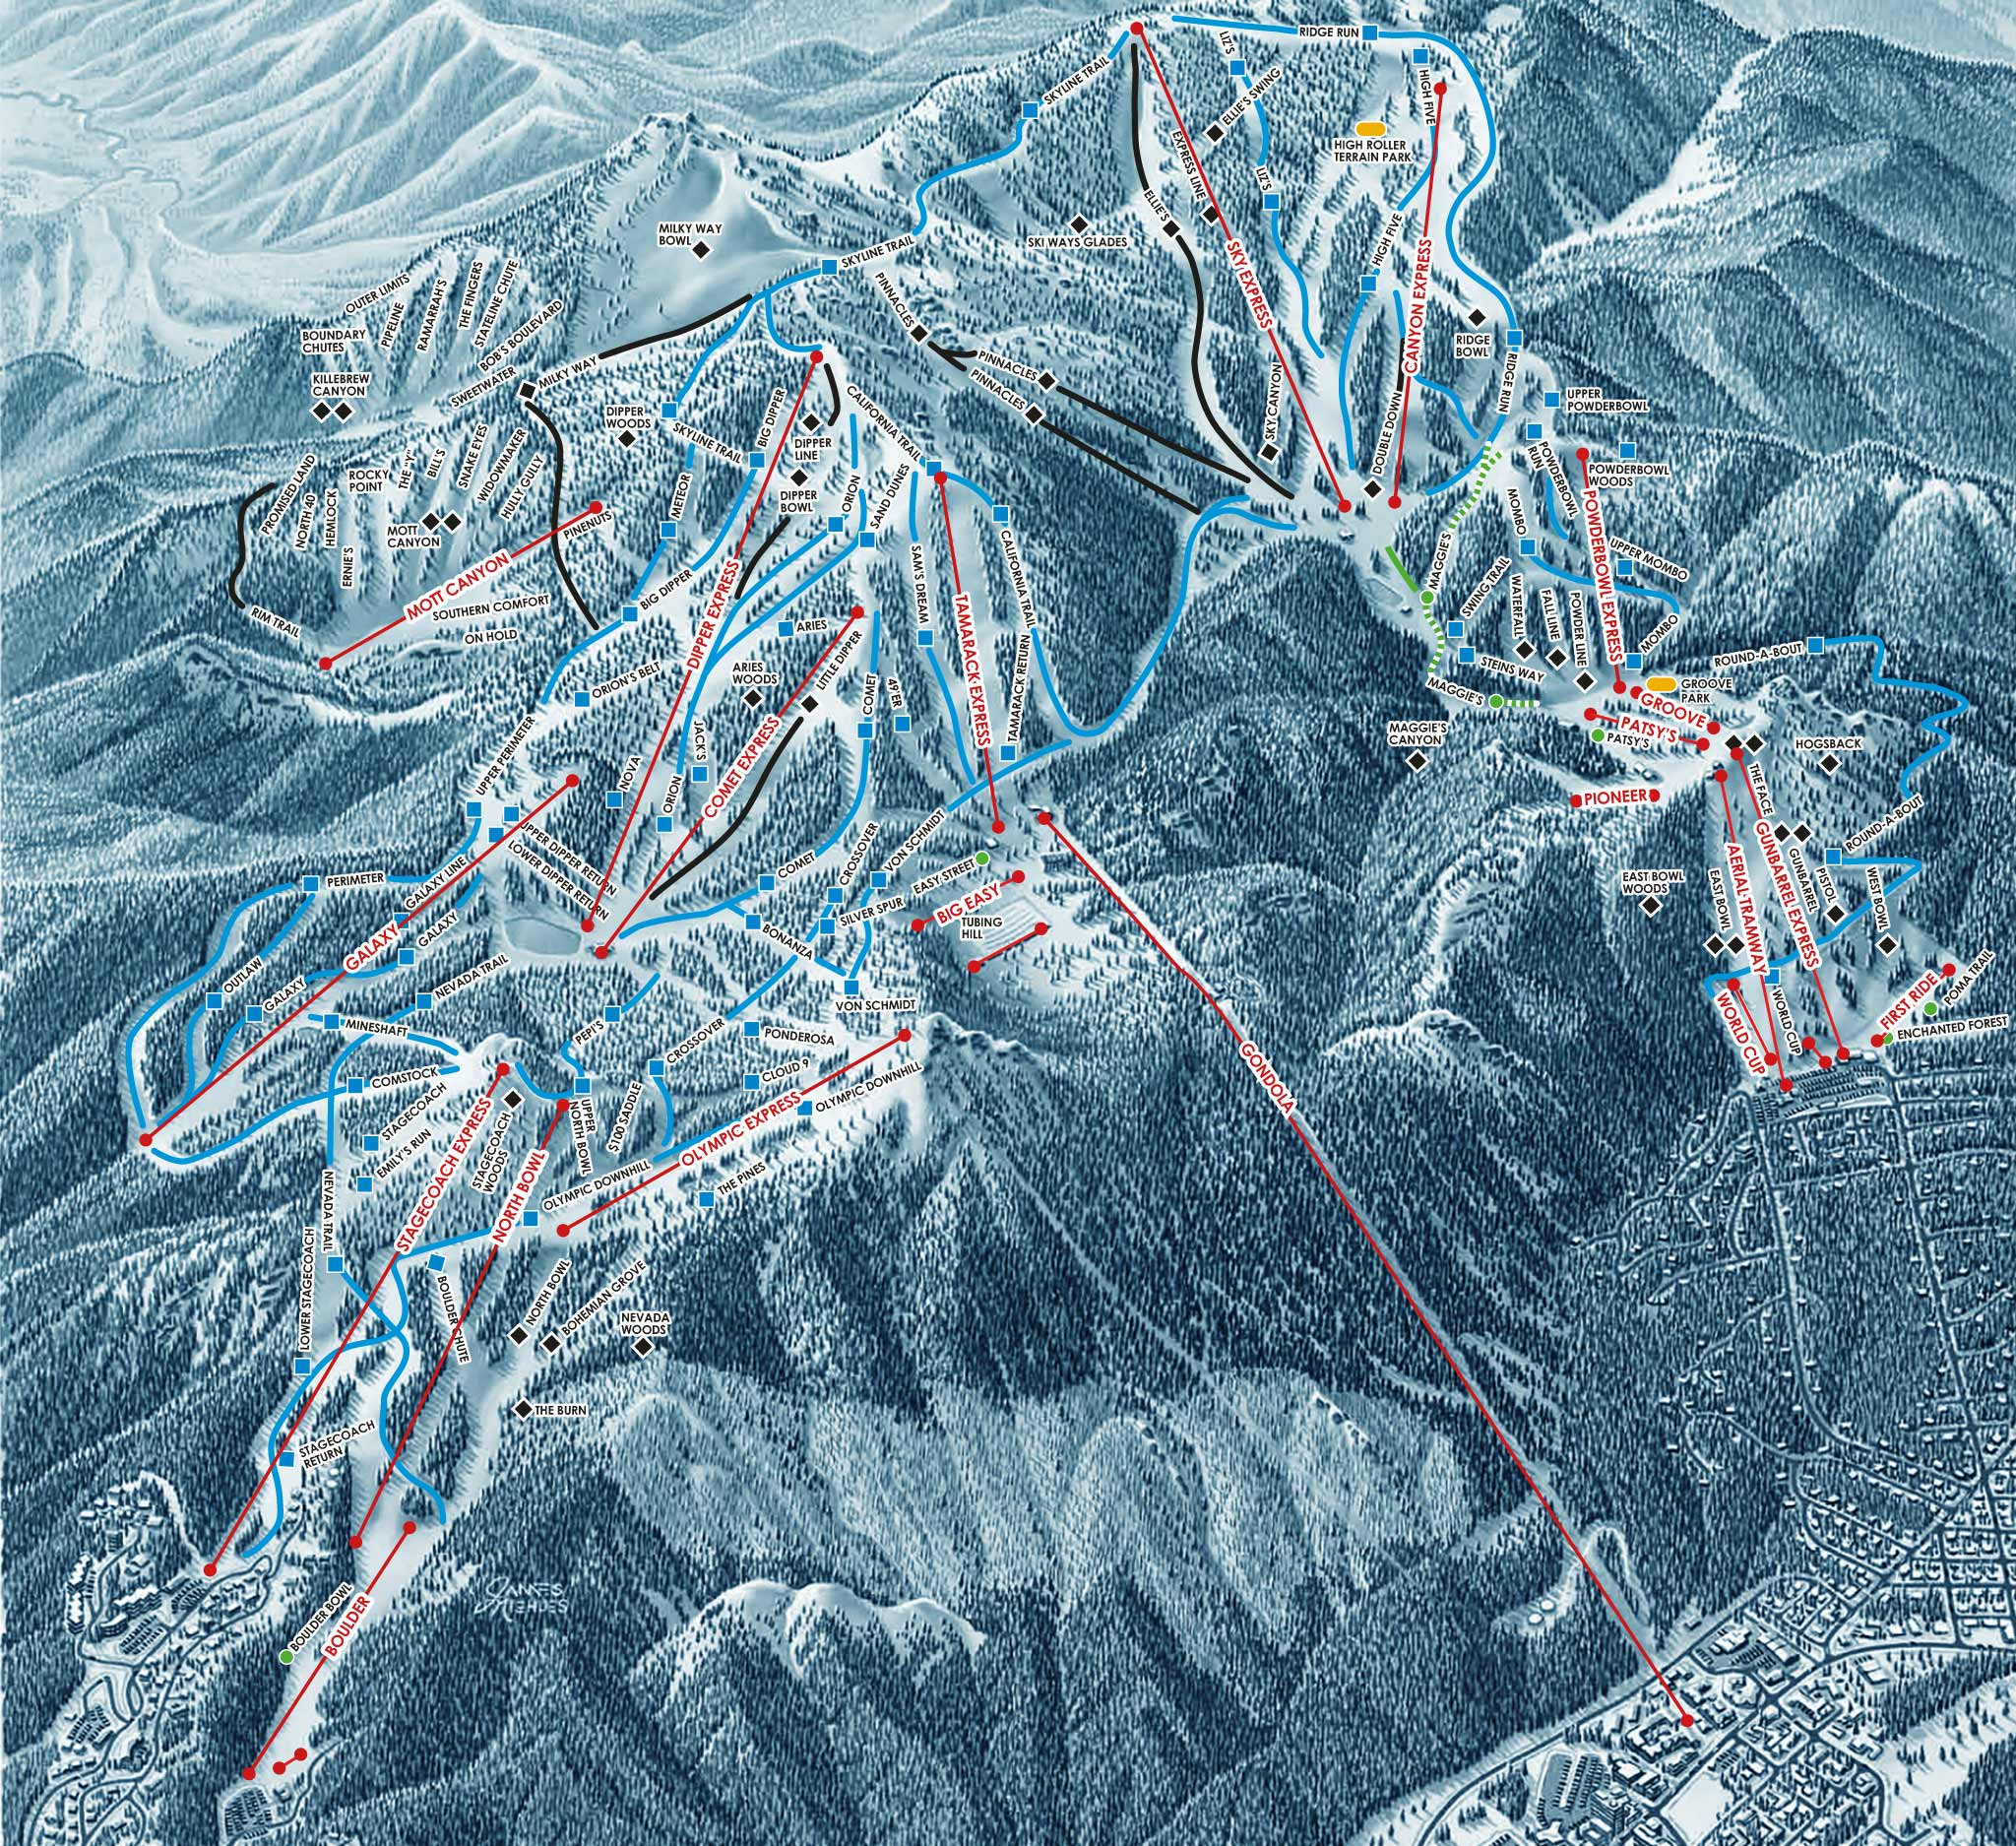 Trail Map | Heavenly Ski Resort on